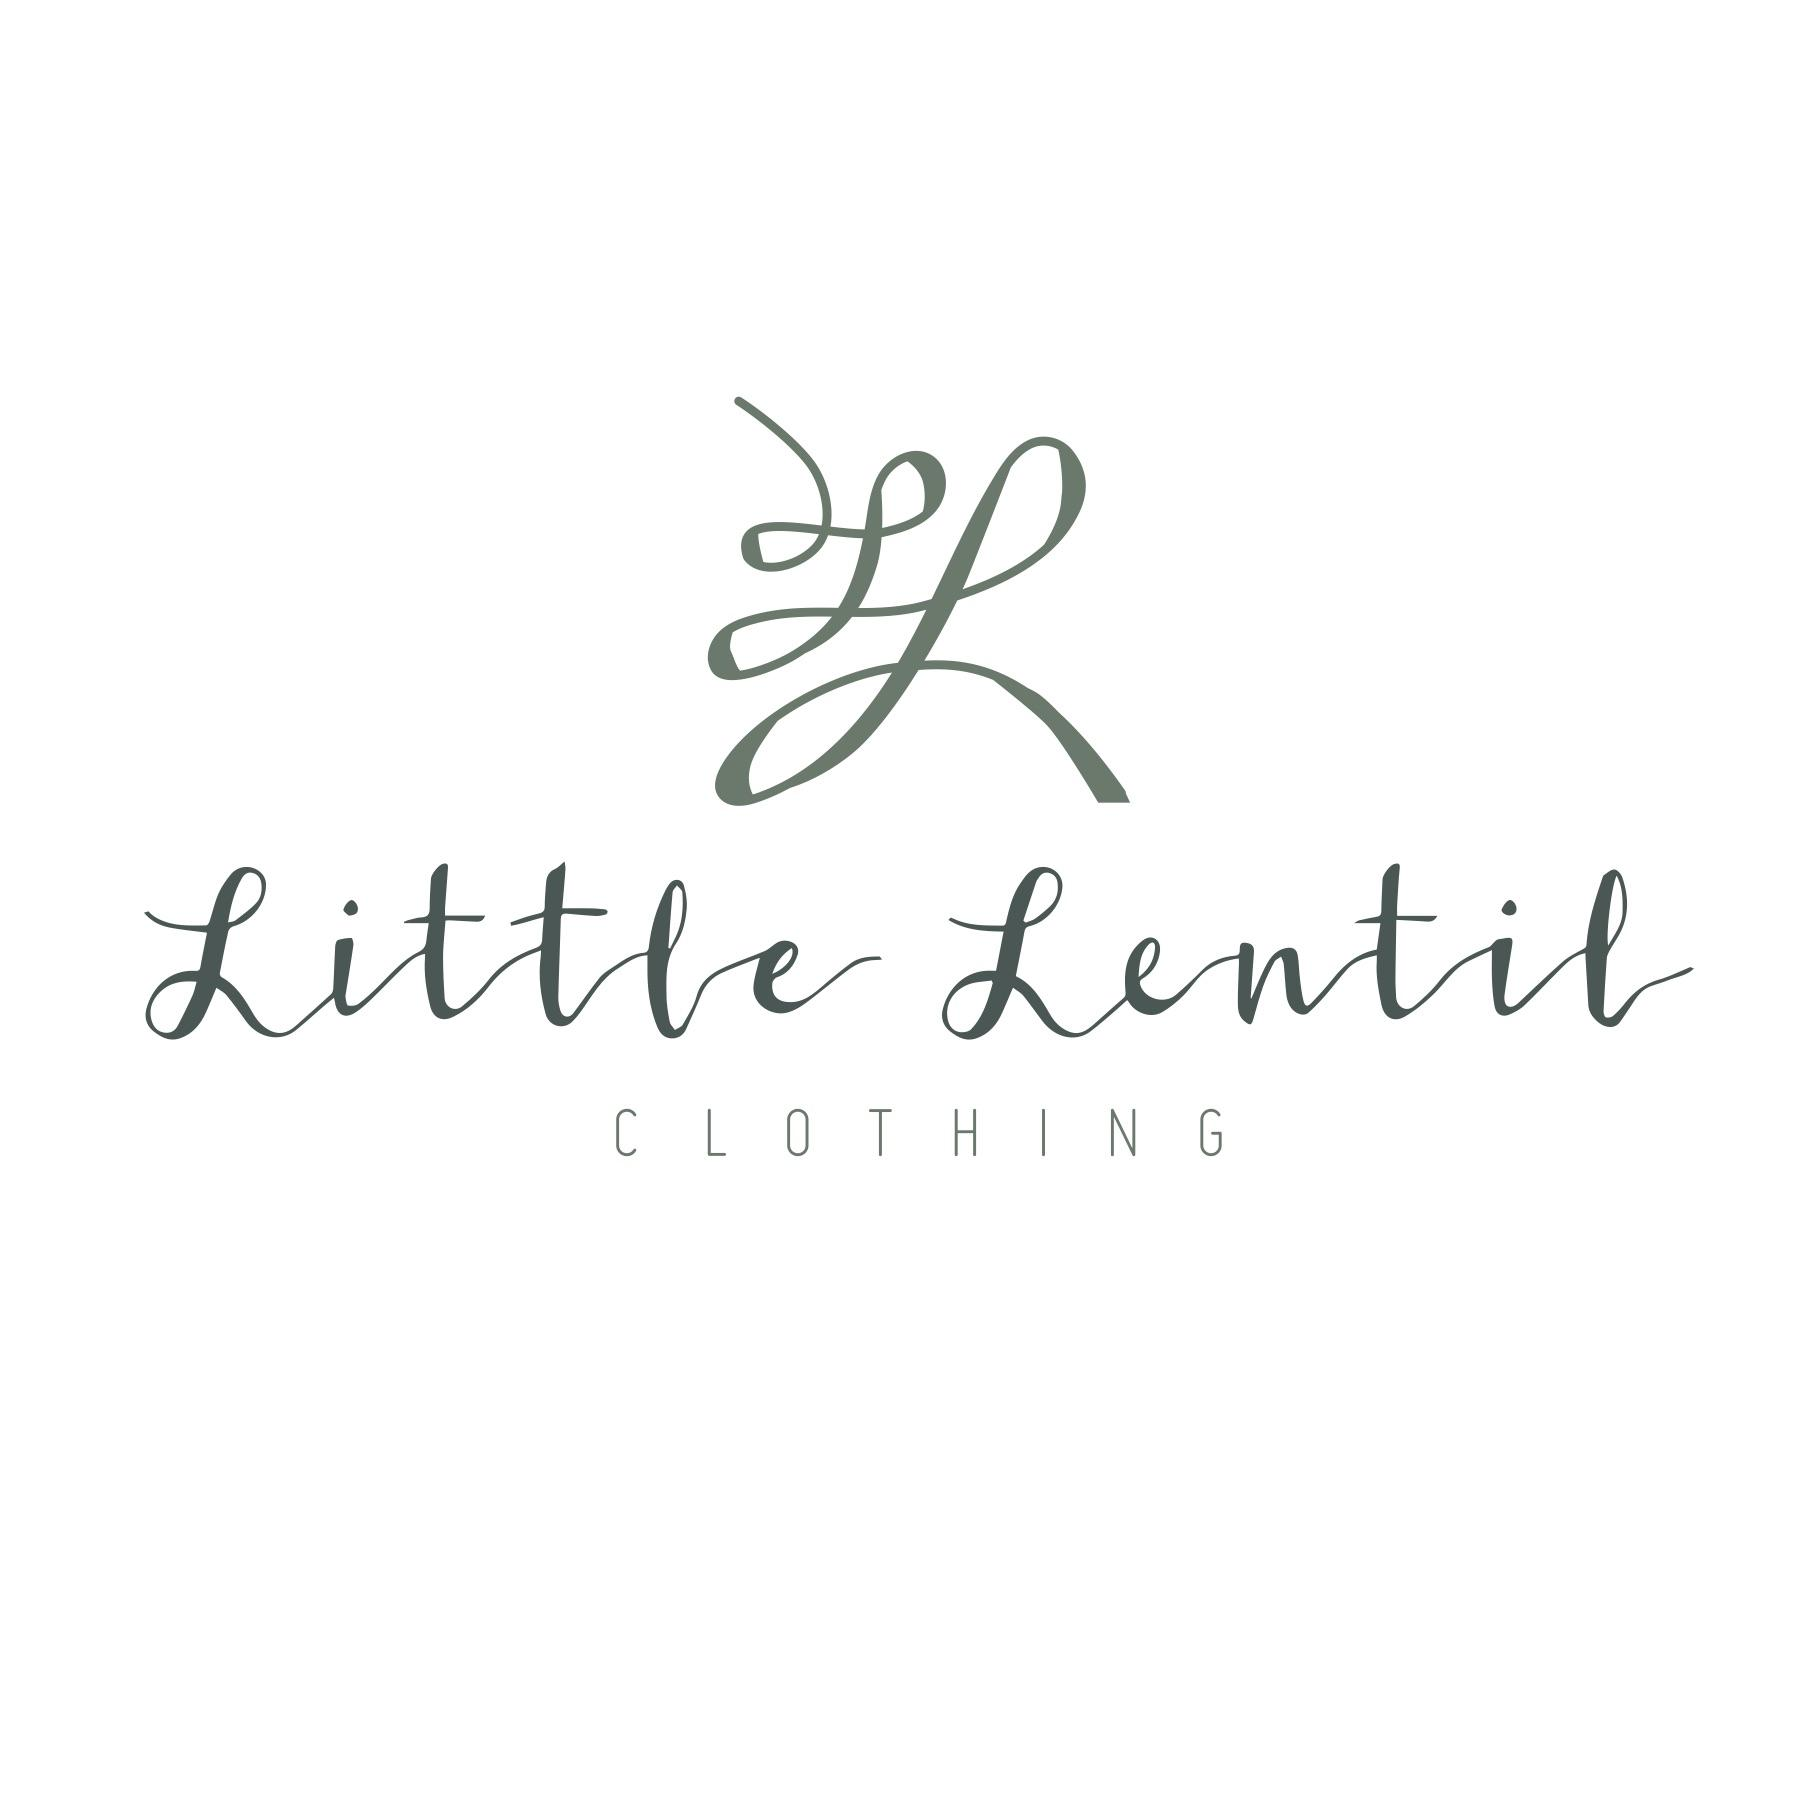 Little Lentil Clothing logo